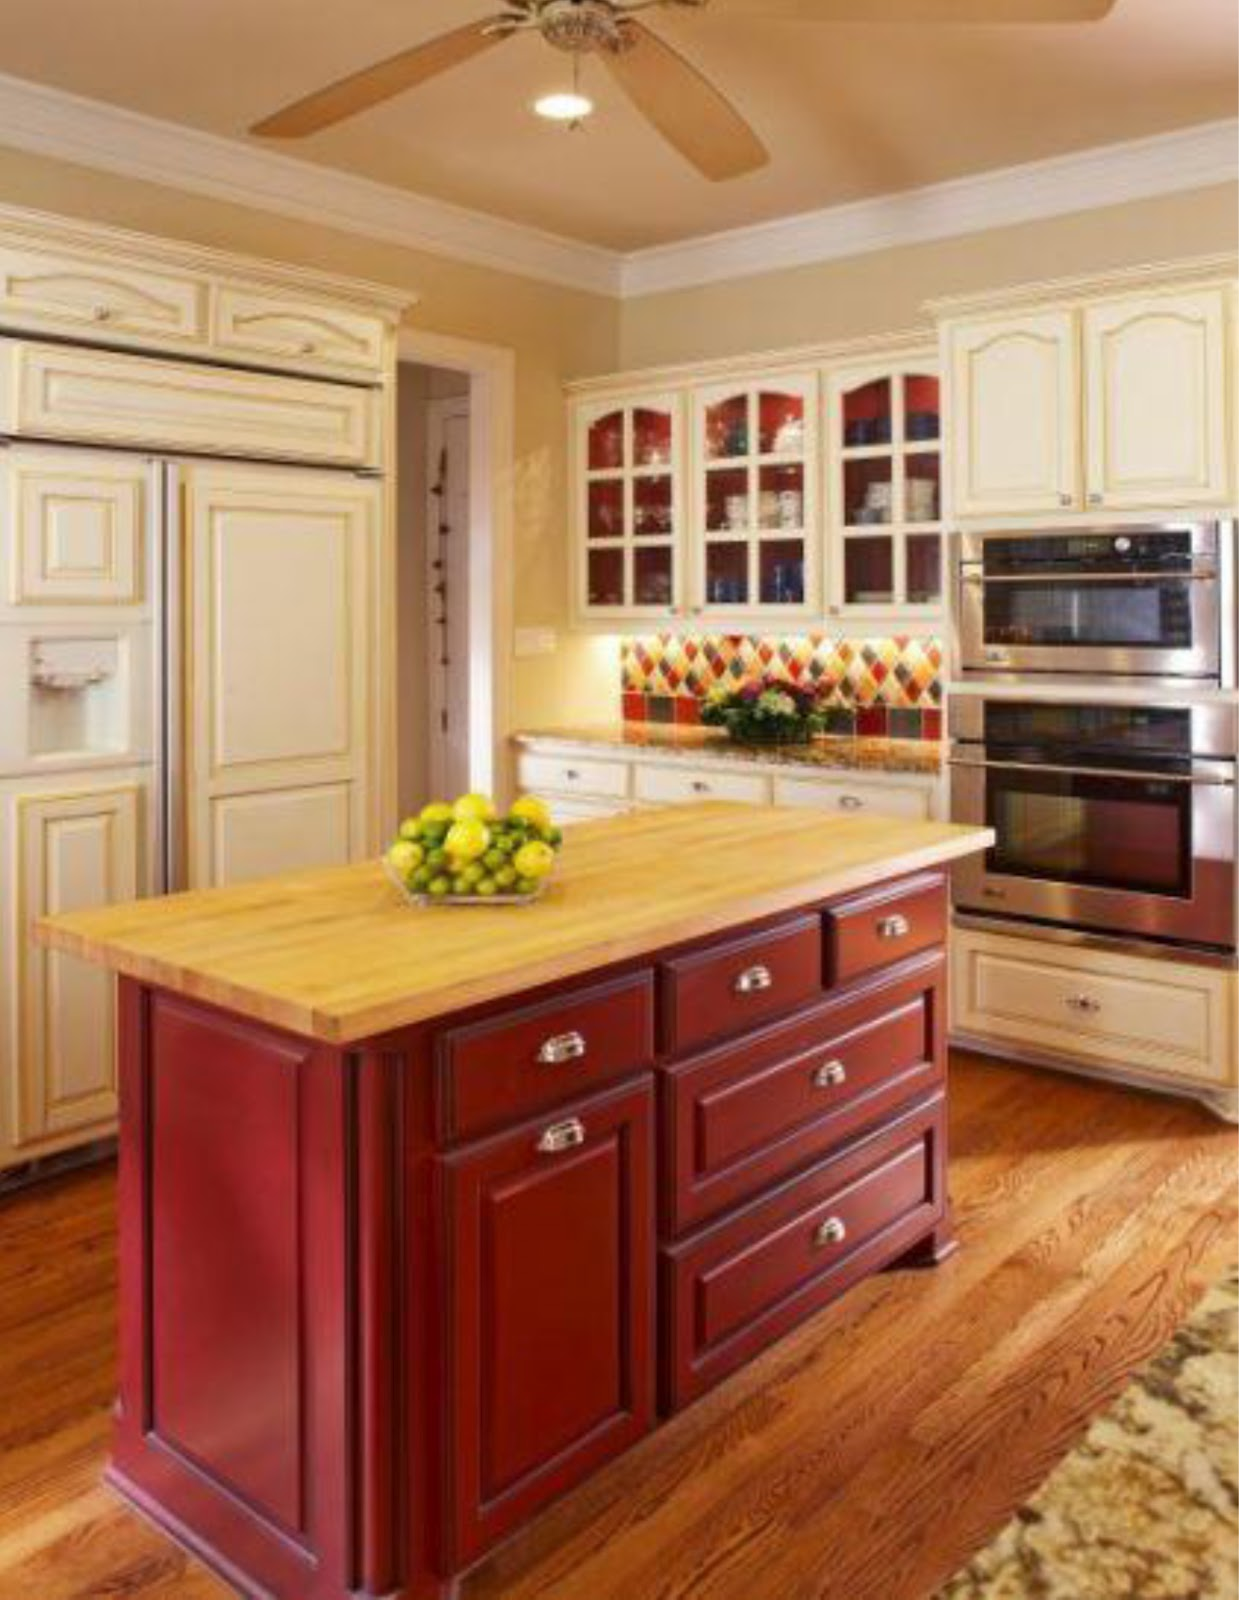 Kitchens With Cream Colored Cabinets